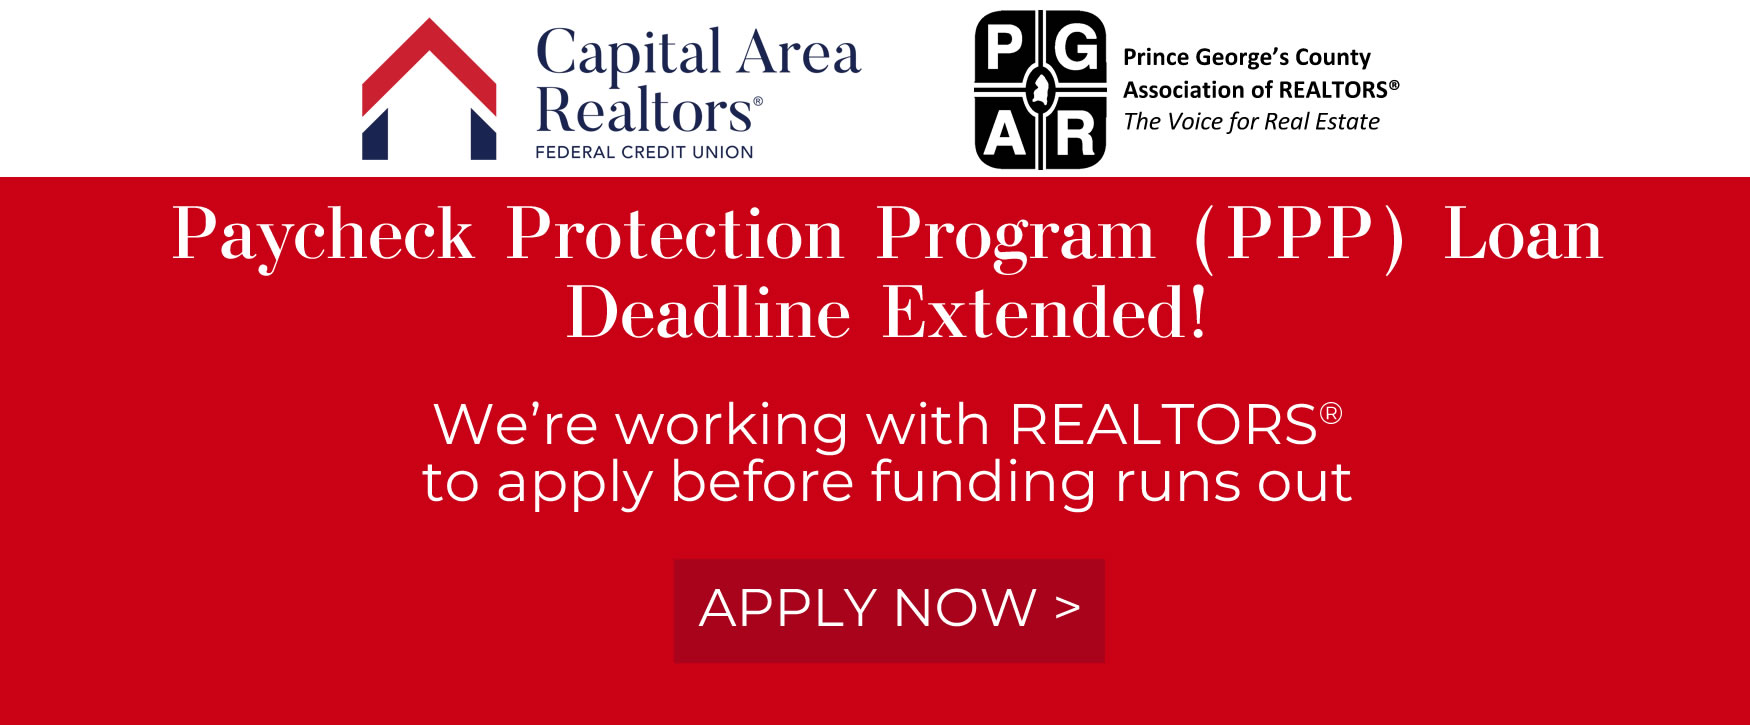 Apply today to gain PPP funding